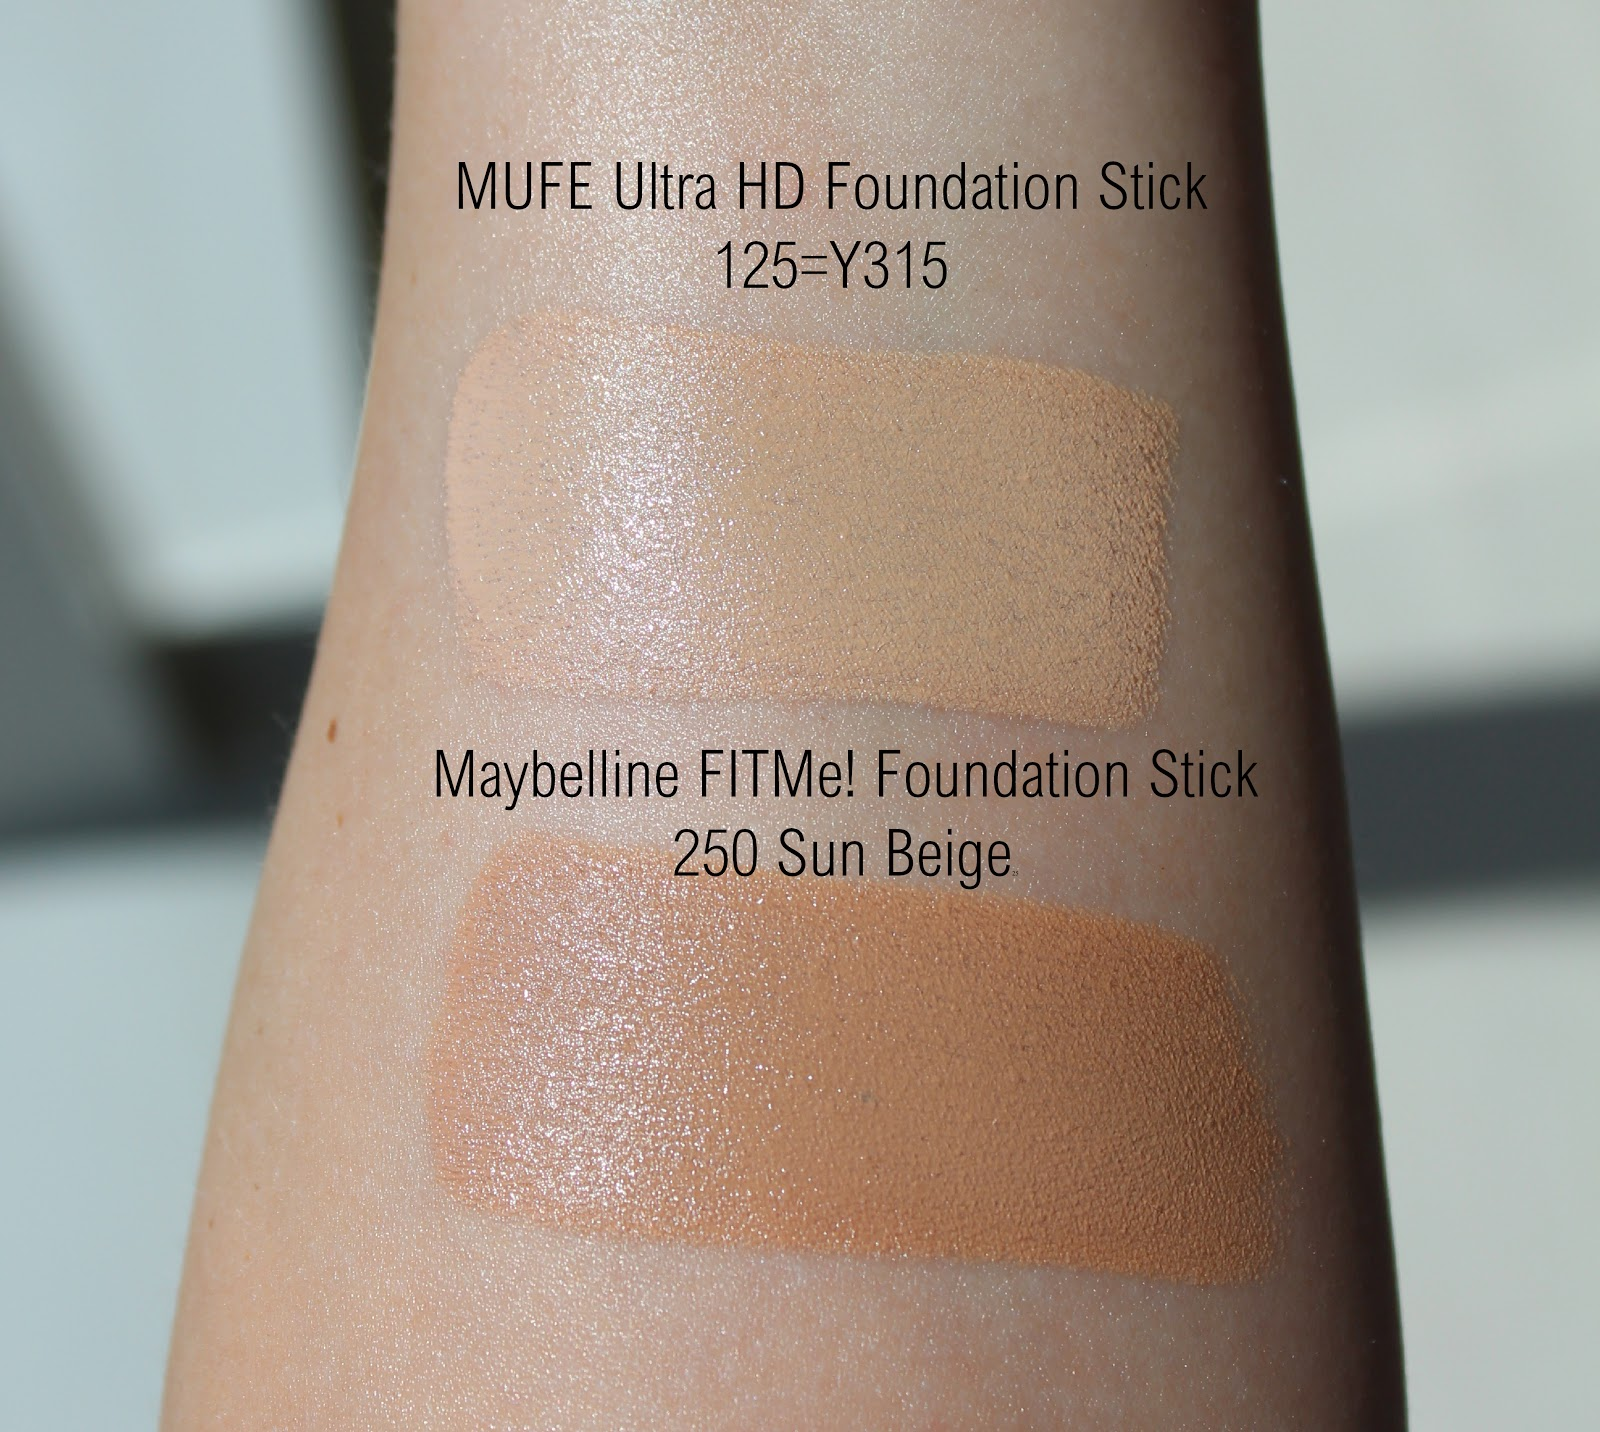 Make Up Forever HD Foundation Stick Review and Swatches, Maybelline Fit Me Foundation Stick Review and Swatches, MUFE HD Foundation Dupe